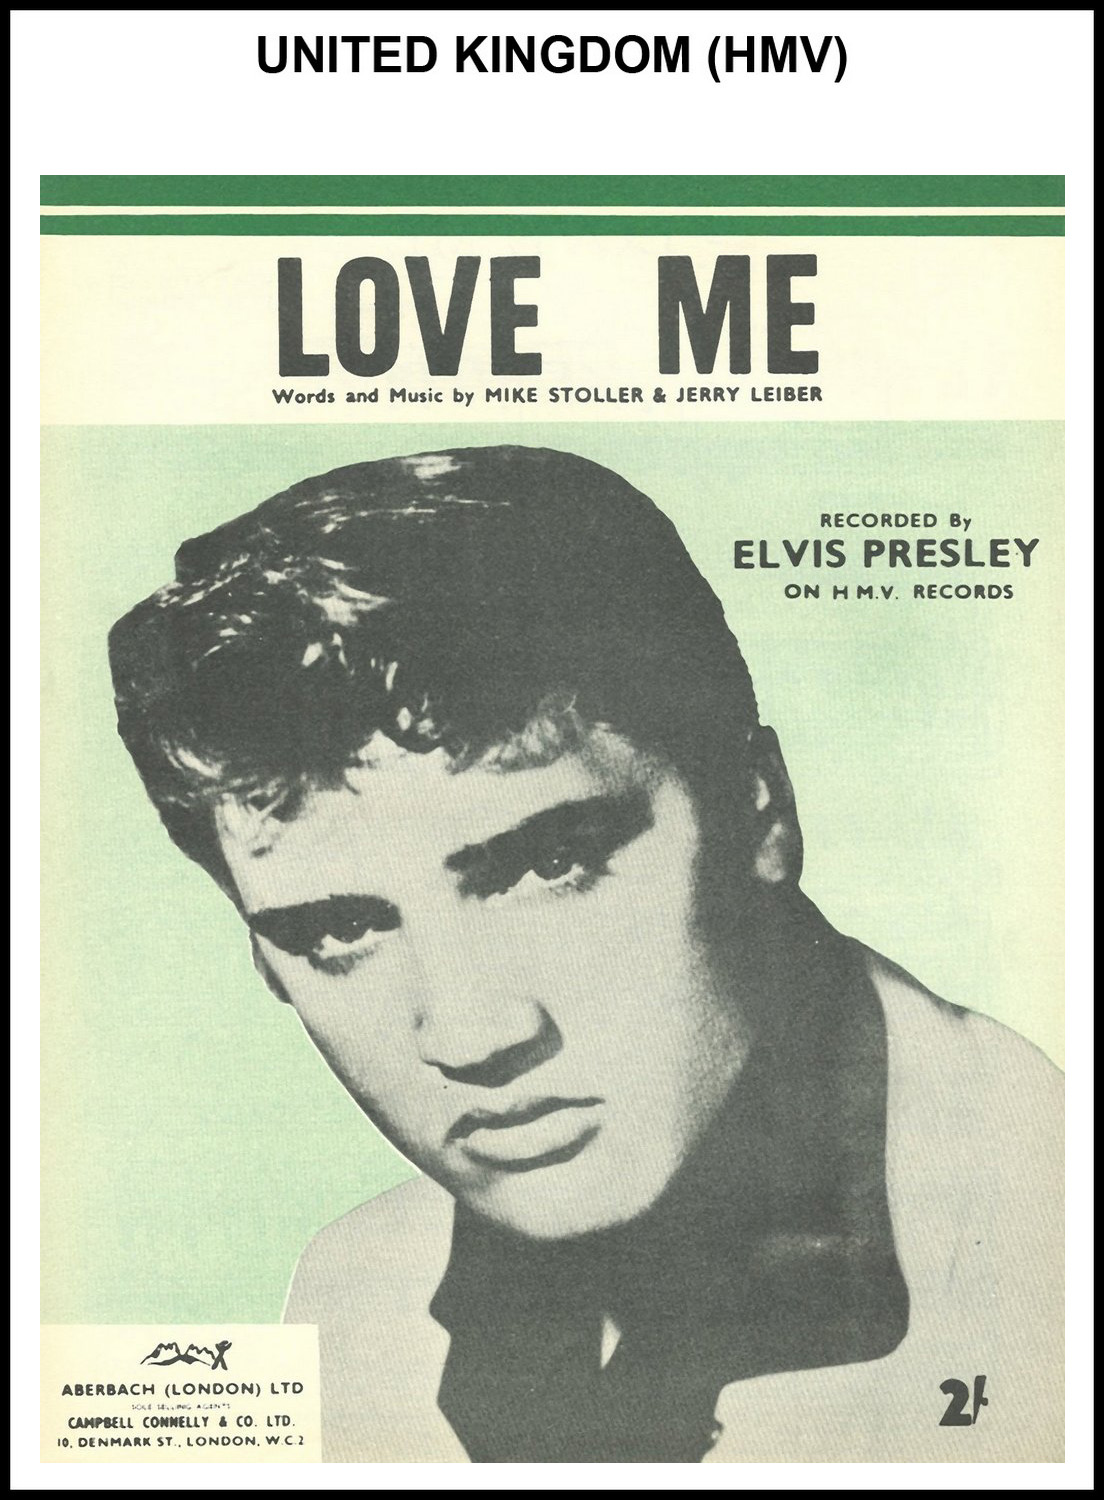 1956 - Love Me (UK, HMV) (CHRIS GILES COLLECTION)